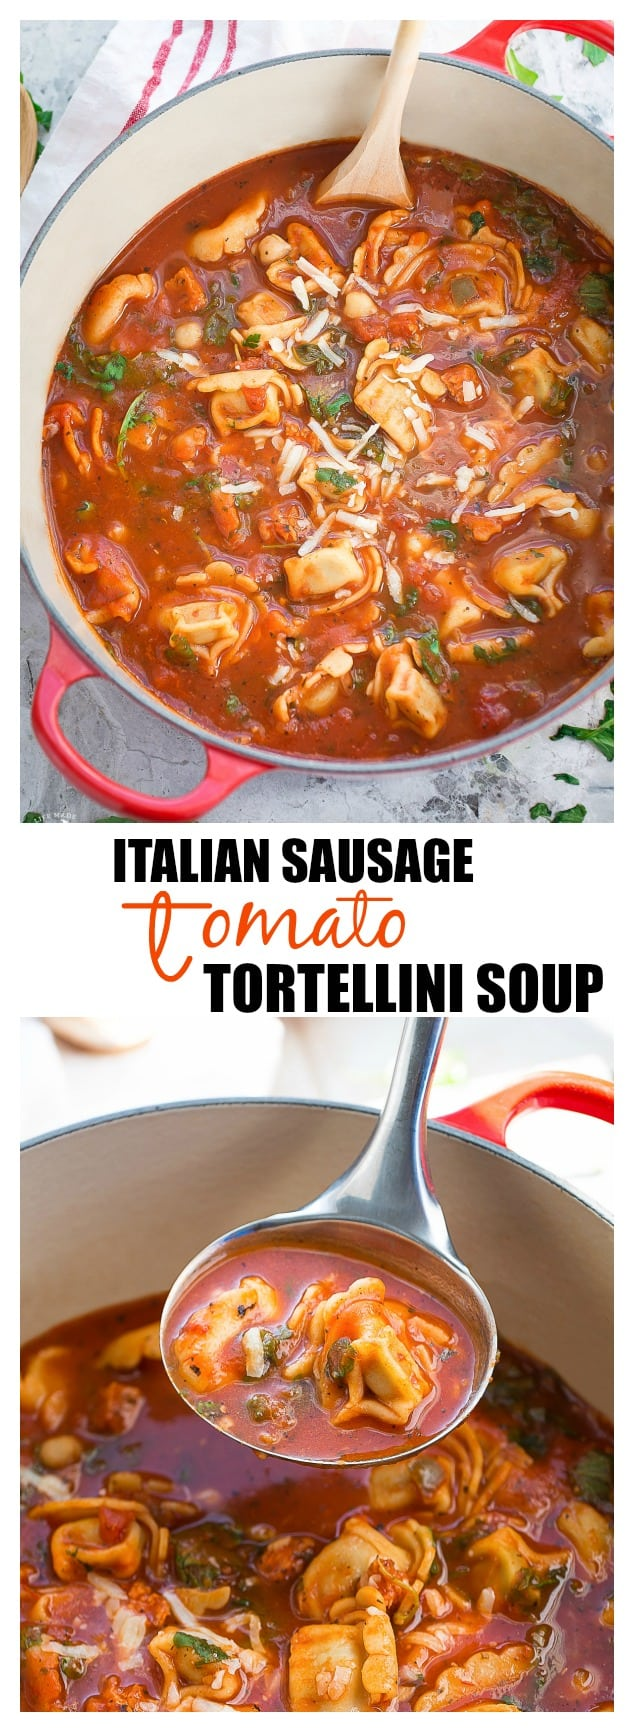 Italian Sausauge Tortellini Tomato Soup is an easy meal perfect for busy weeknights